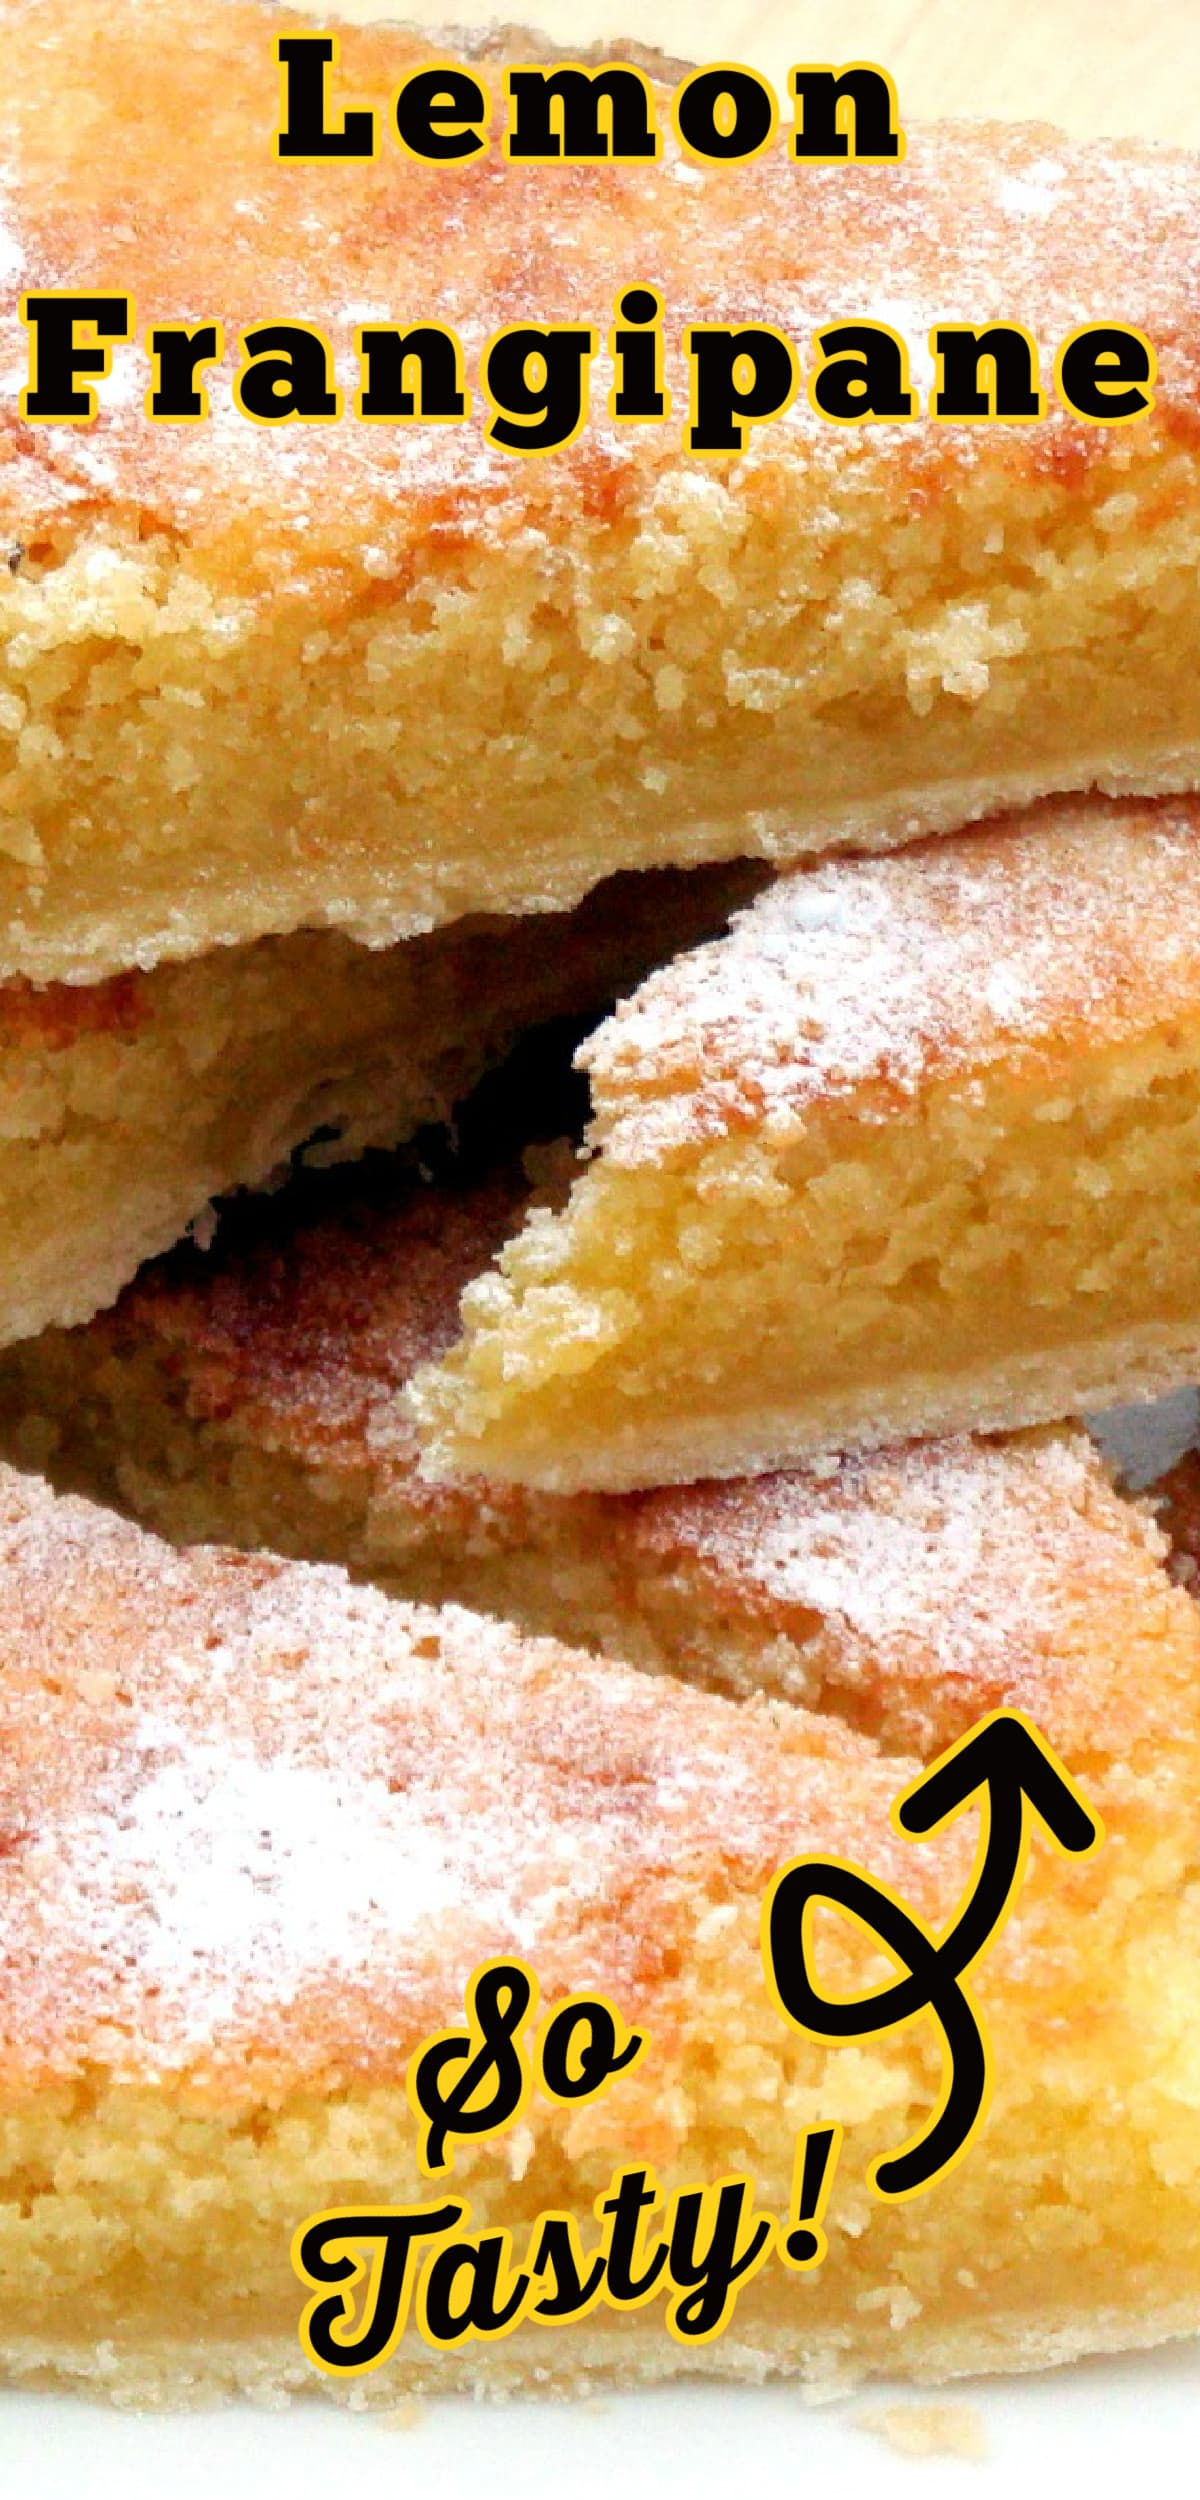 Lemon Frangipane. This is a really nice coffee time cake to make. Goes great with a nice cup of tea! Or you can have as a dessert, warm or cold with a squirt of whipped cream or like me, a blob of vanilla ice cream! It's really yummy! Delicious!